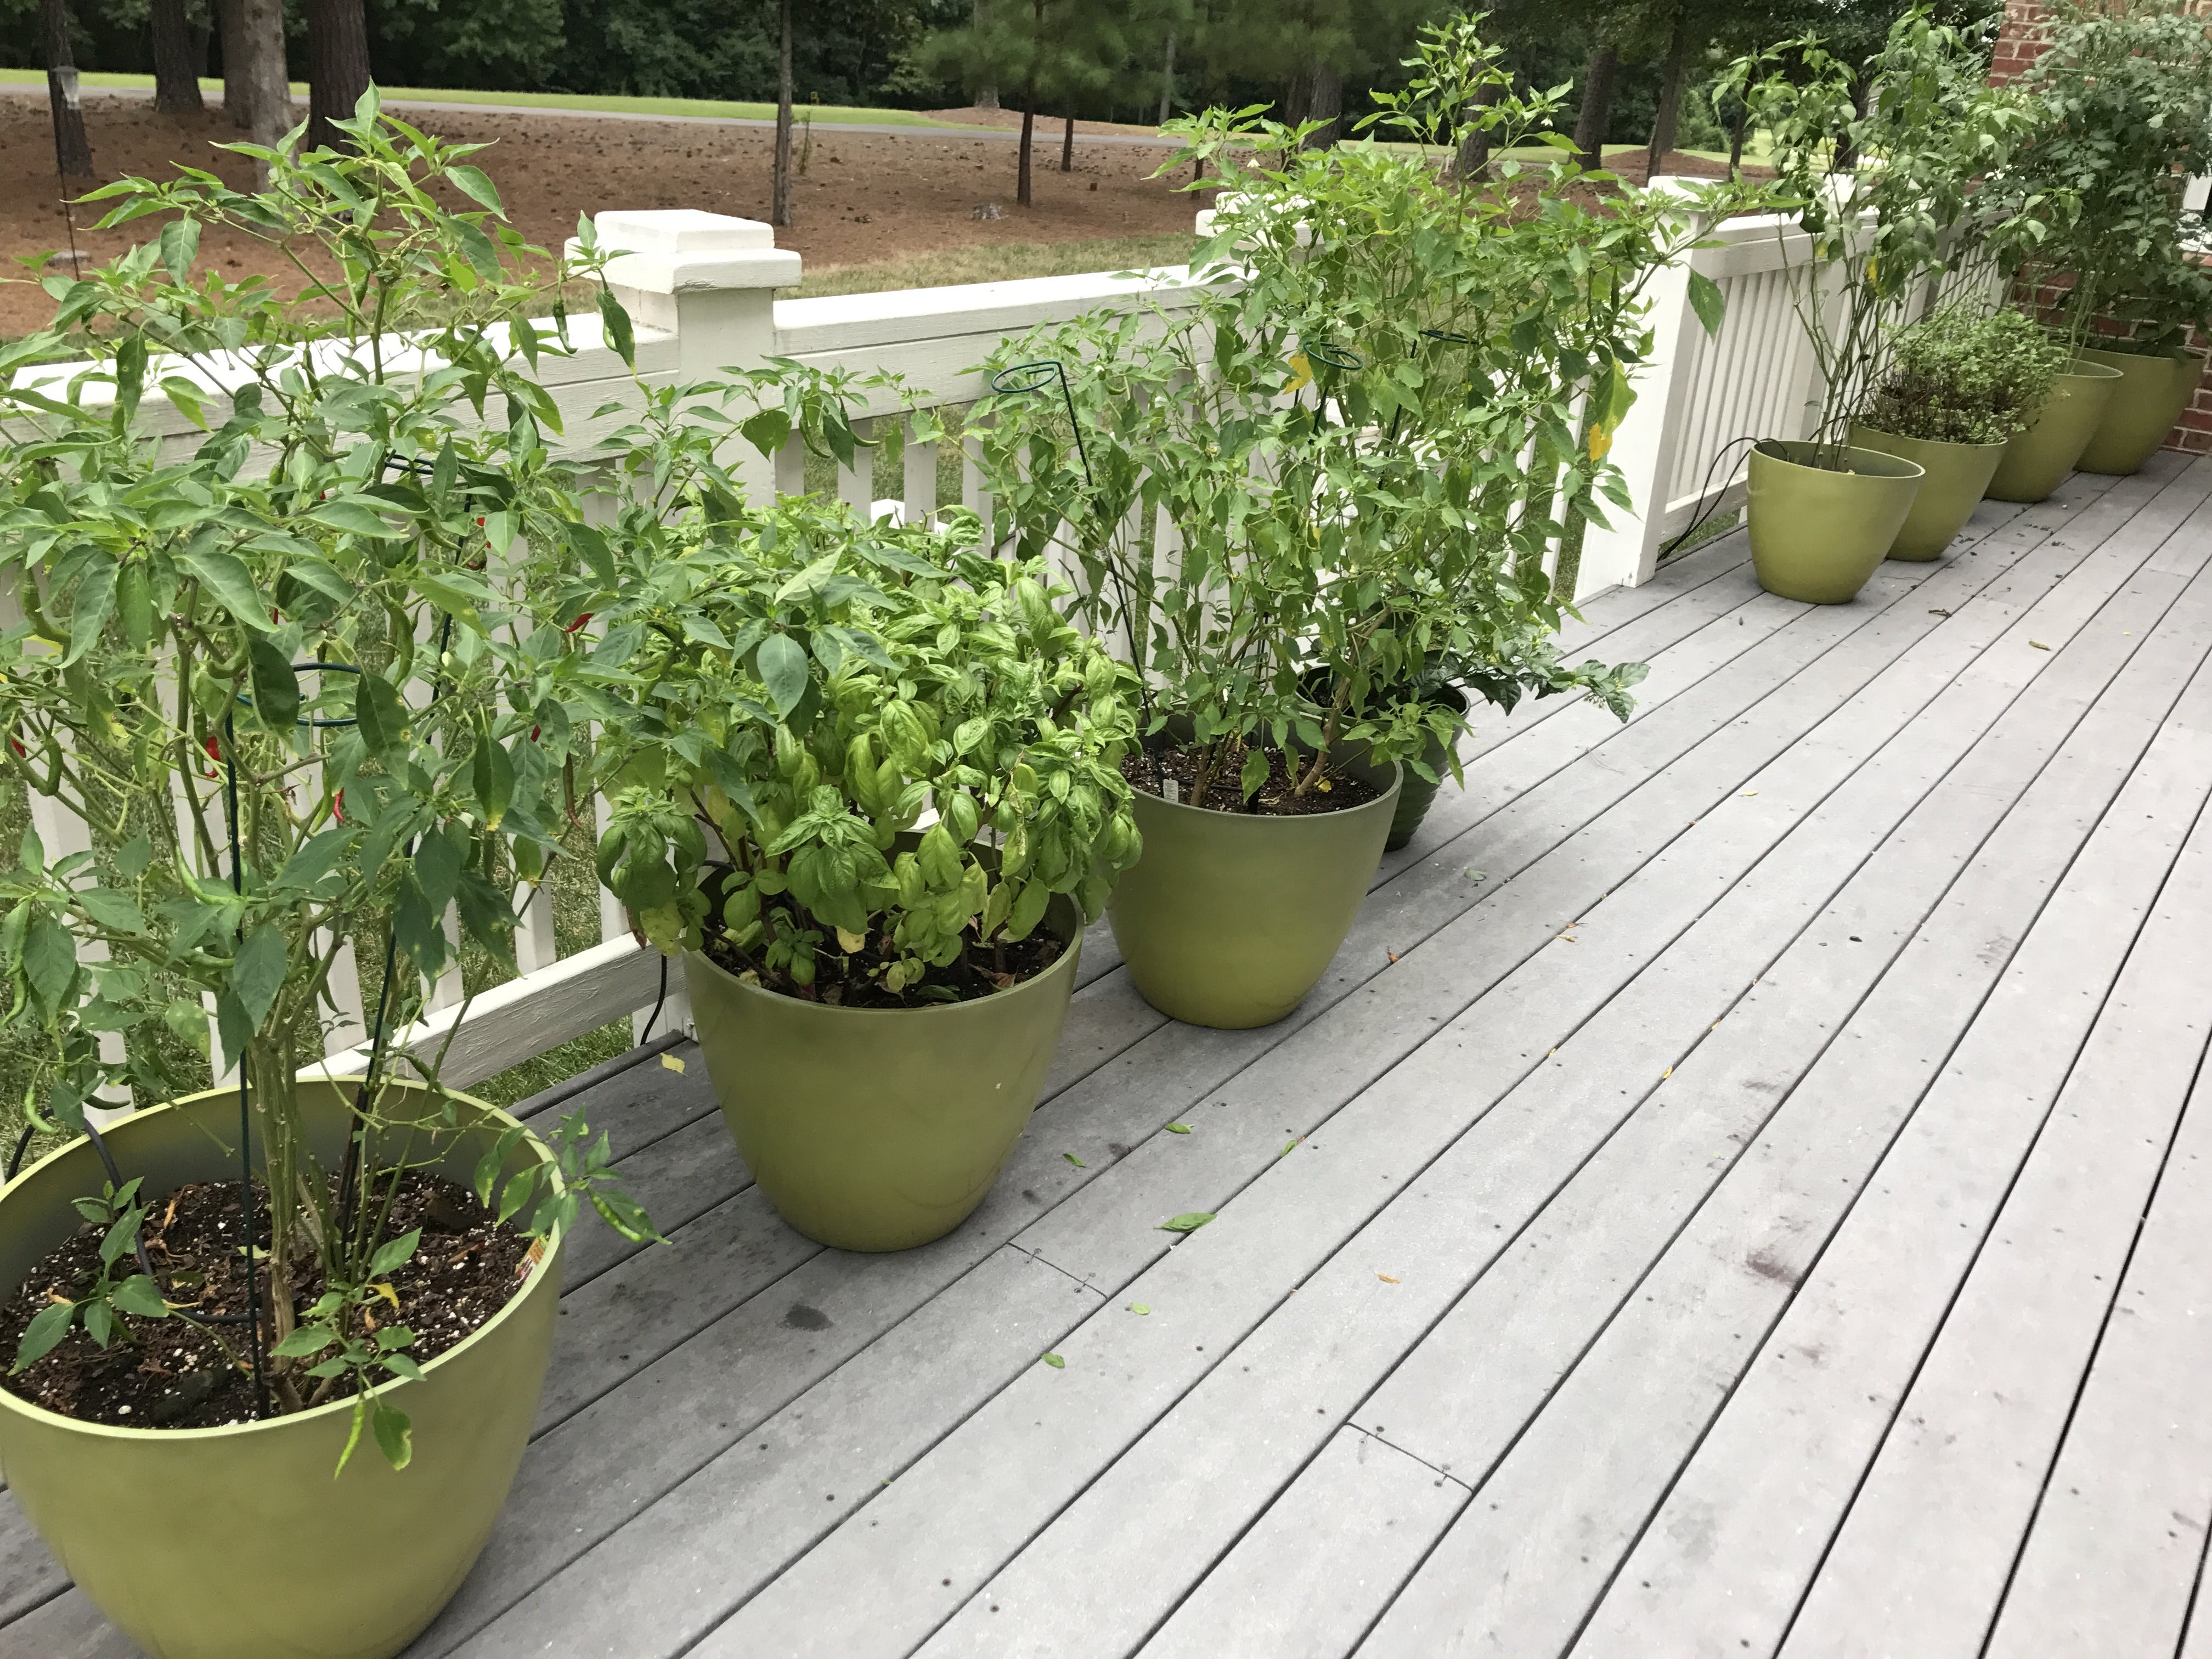 My plants - They have been very good to me this season, this project is the least I can do in return.